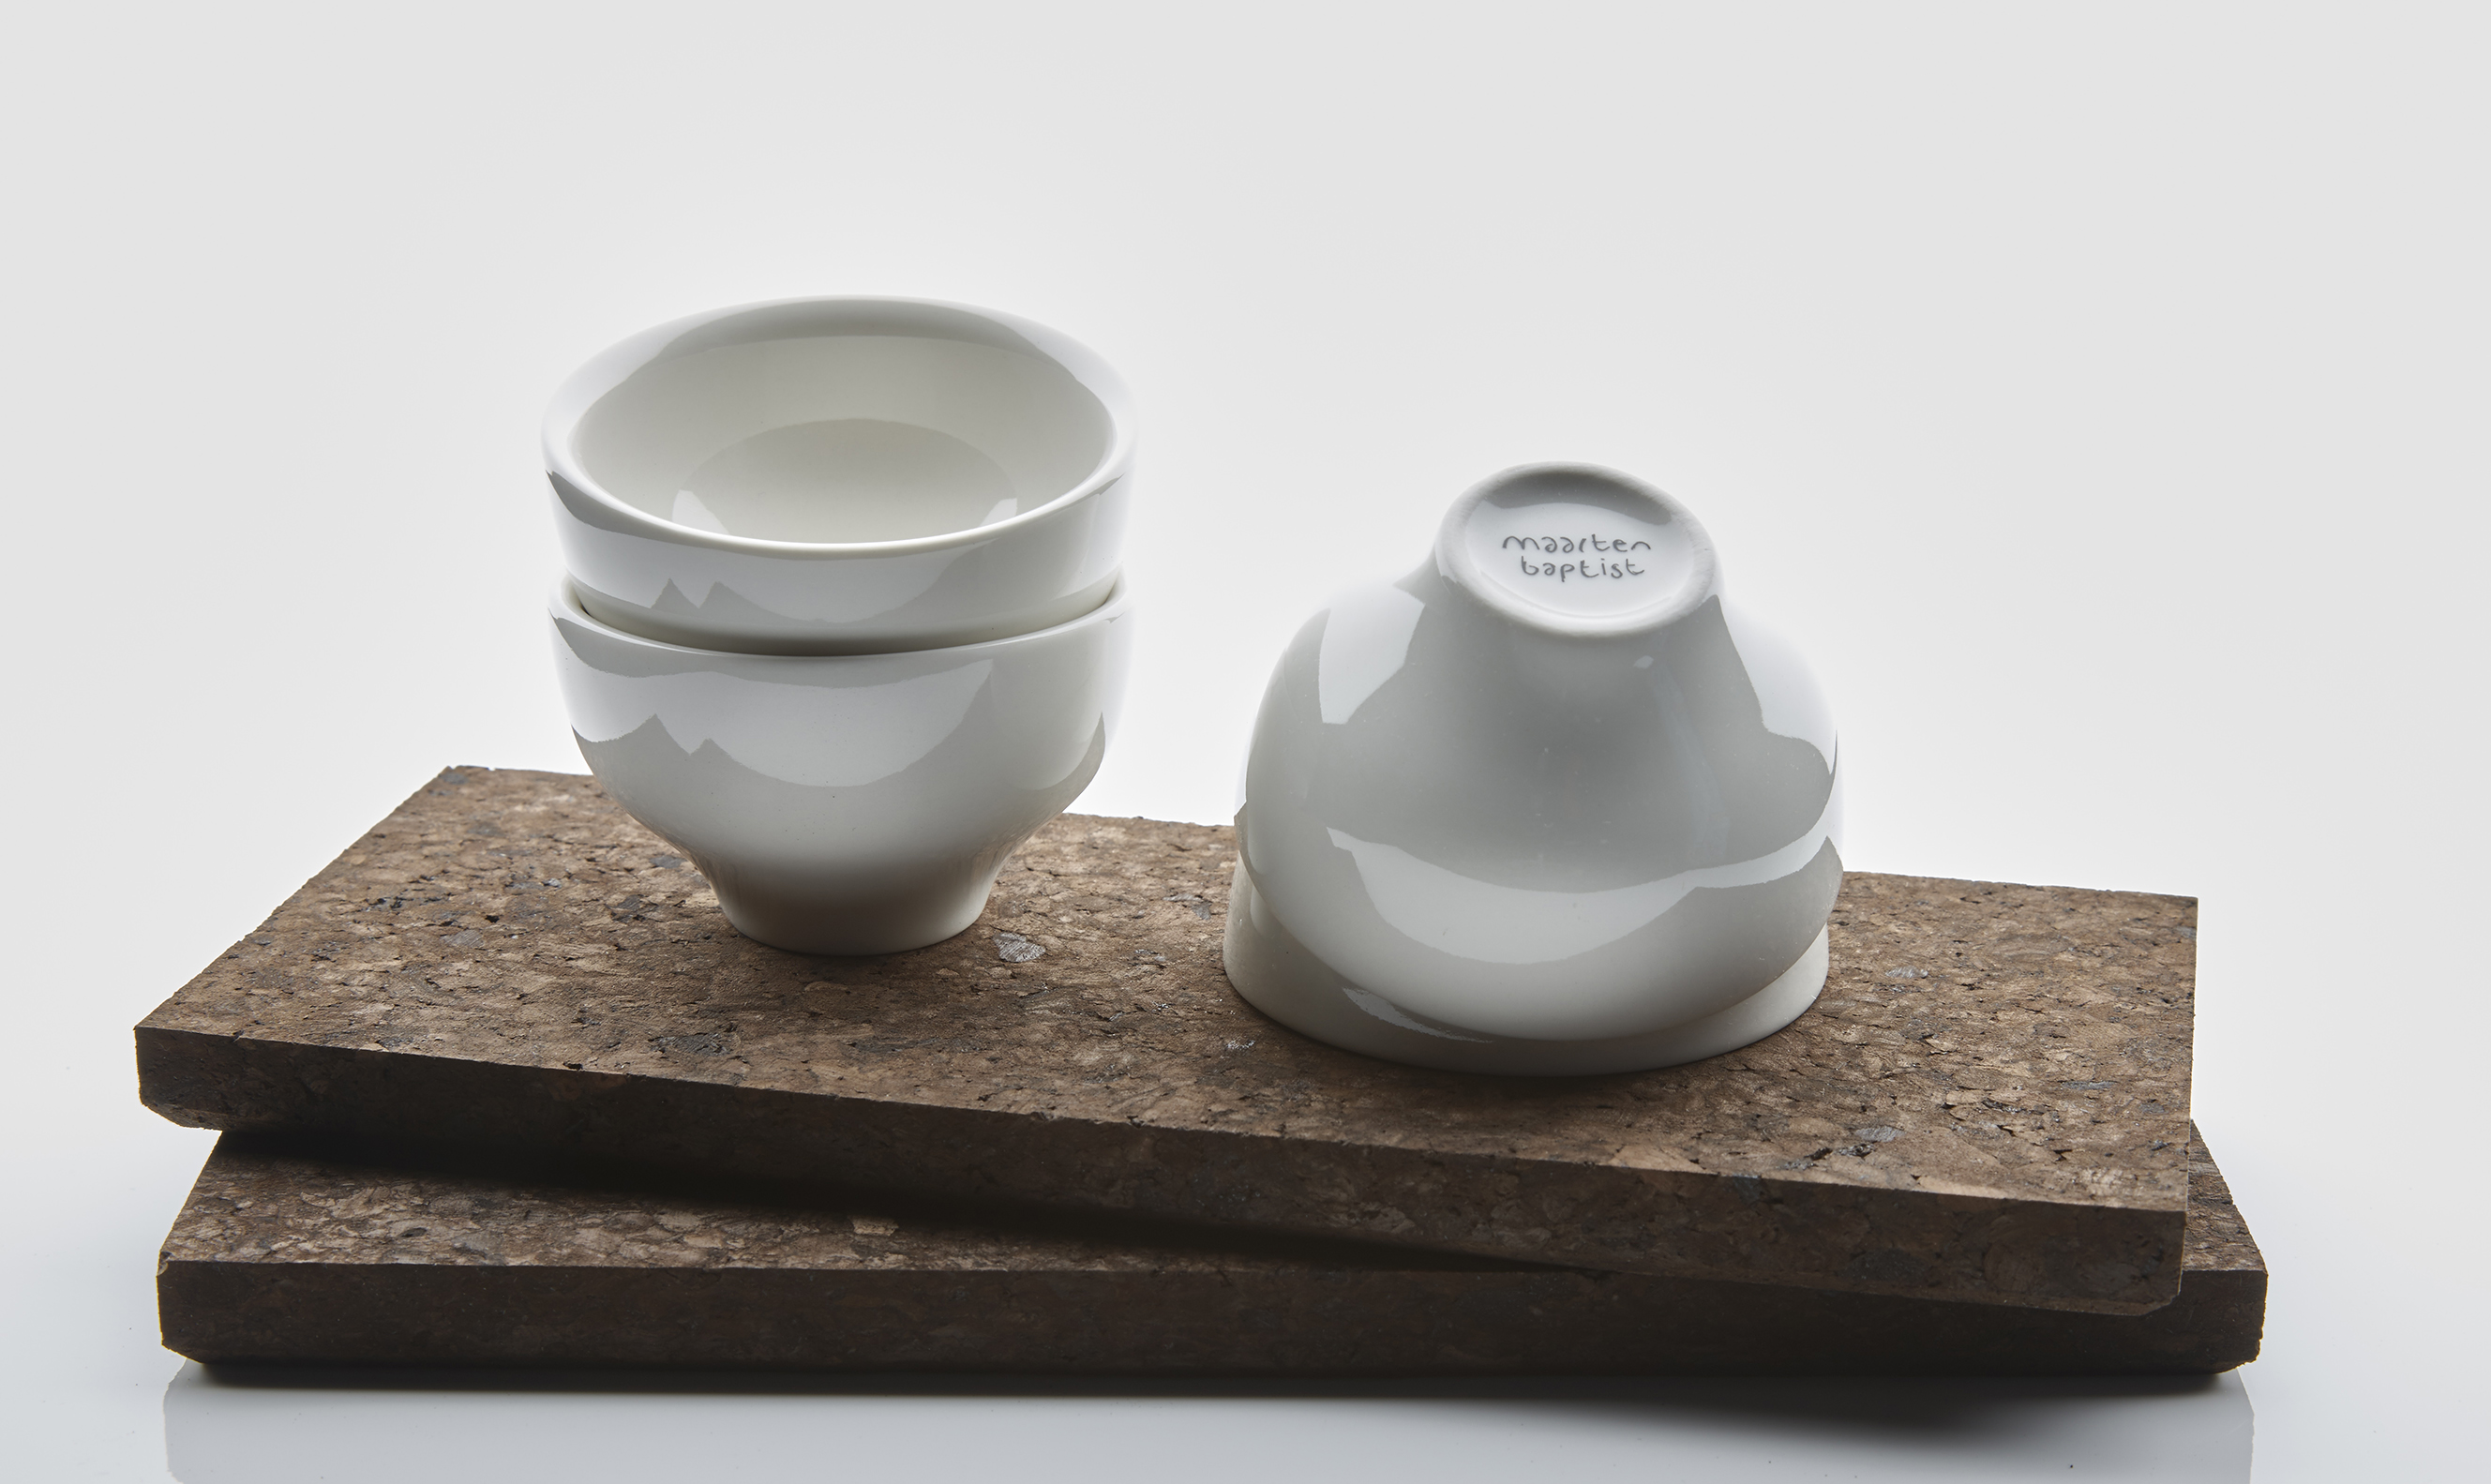 Jade_espresso_cups_on_cork_tray_gift_set_maarten_baptist_koffie_kopje_dutch_design_eindhoven _15_SMALL